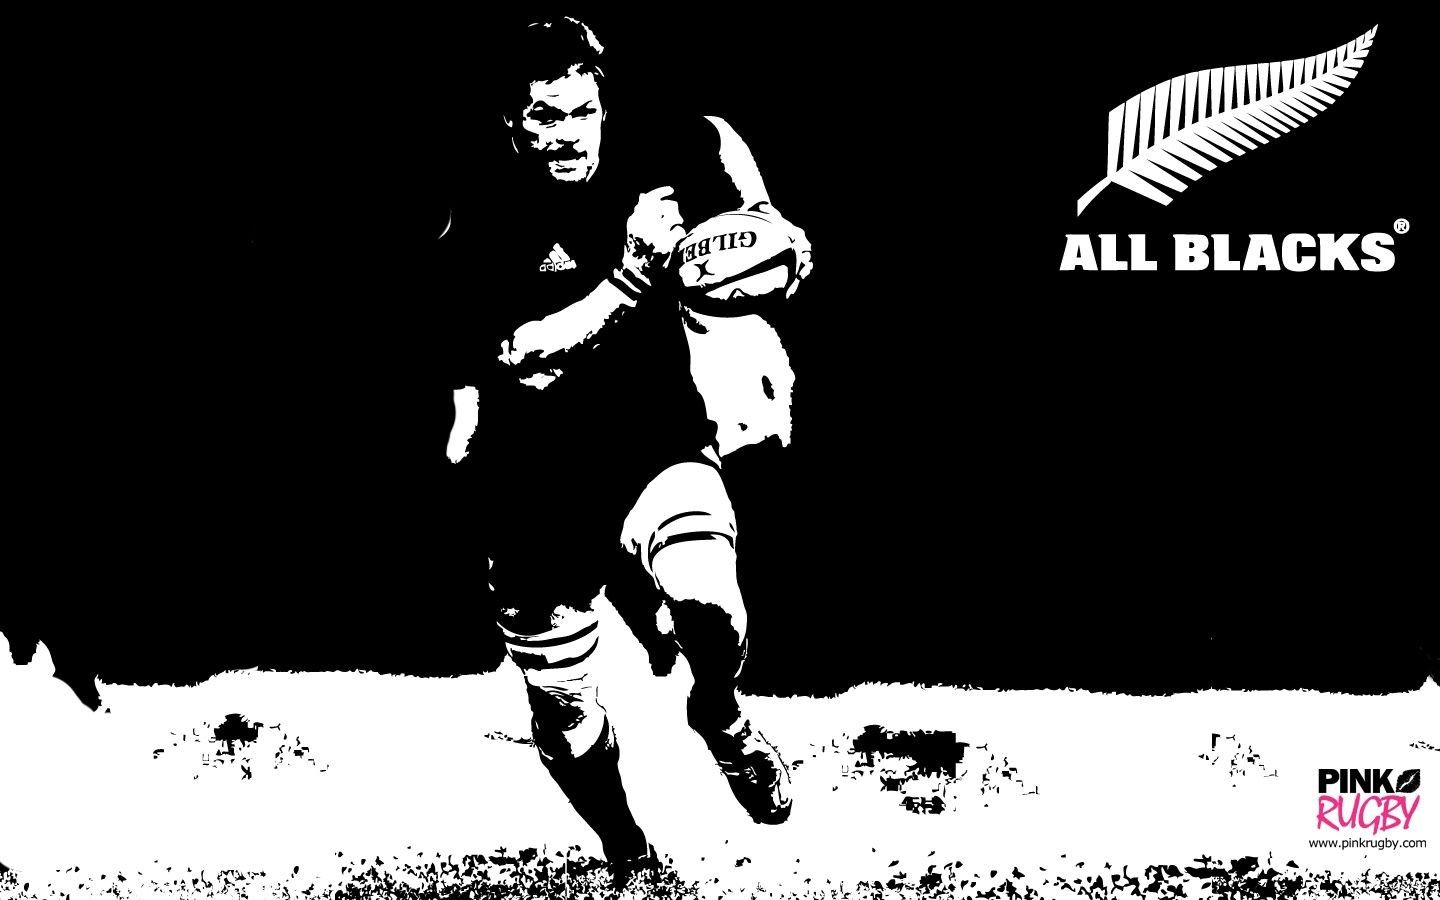 1440900 All Black Rugby Wallpapers With Images Rugby Wallpaper